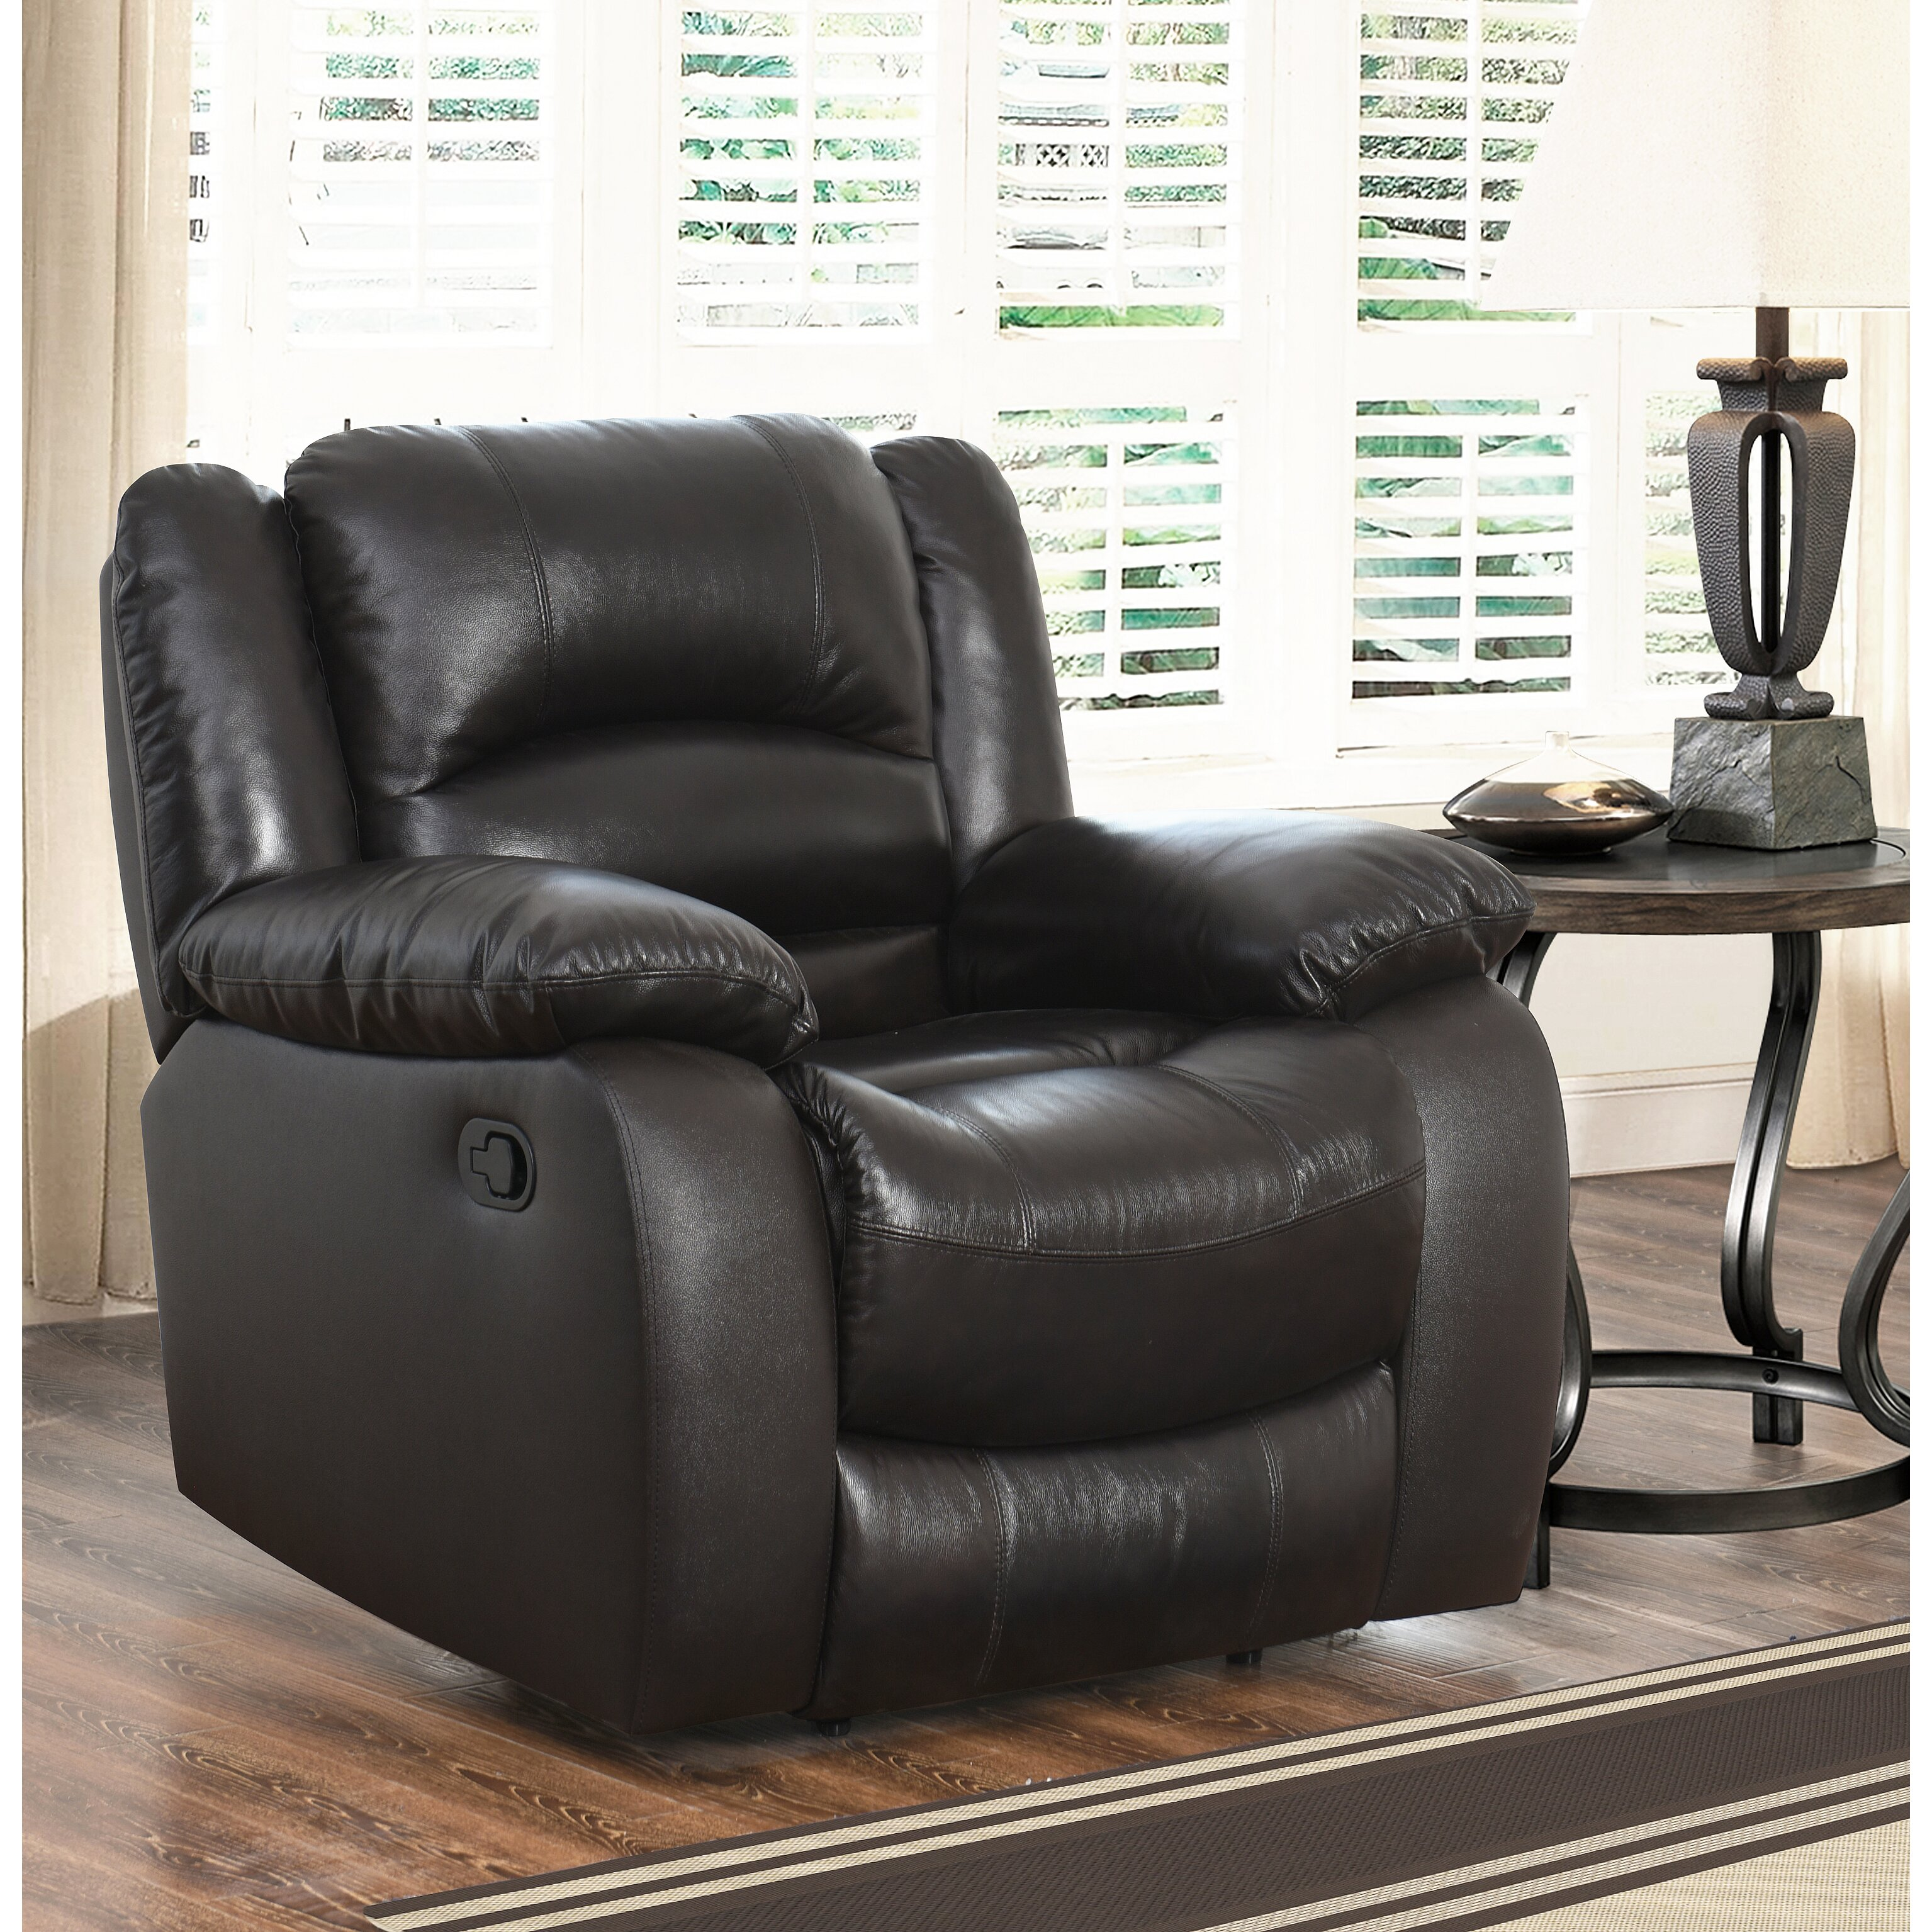 Living Room Sofa And Chair Sets Darby Home Co Jorgensen Reclining Sofa And Chair Set Reviews